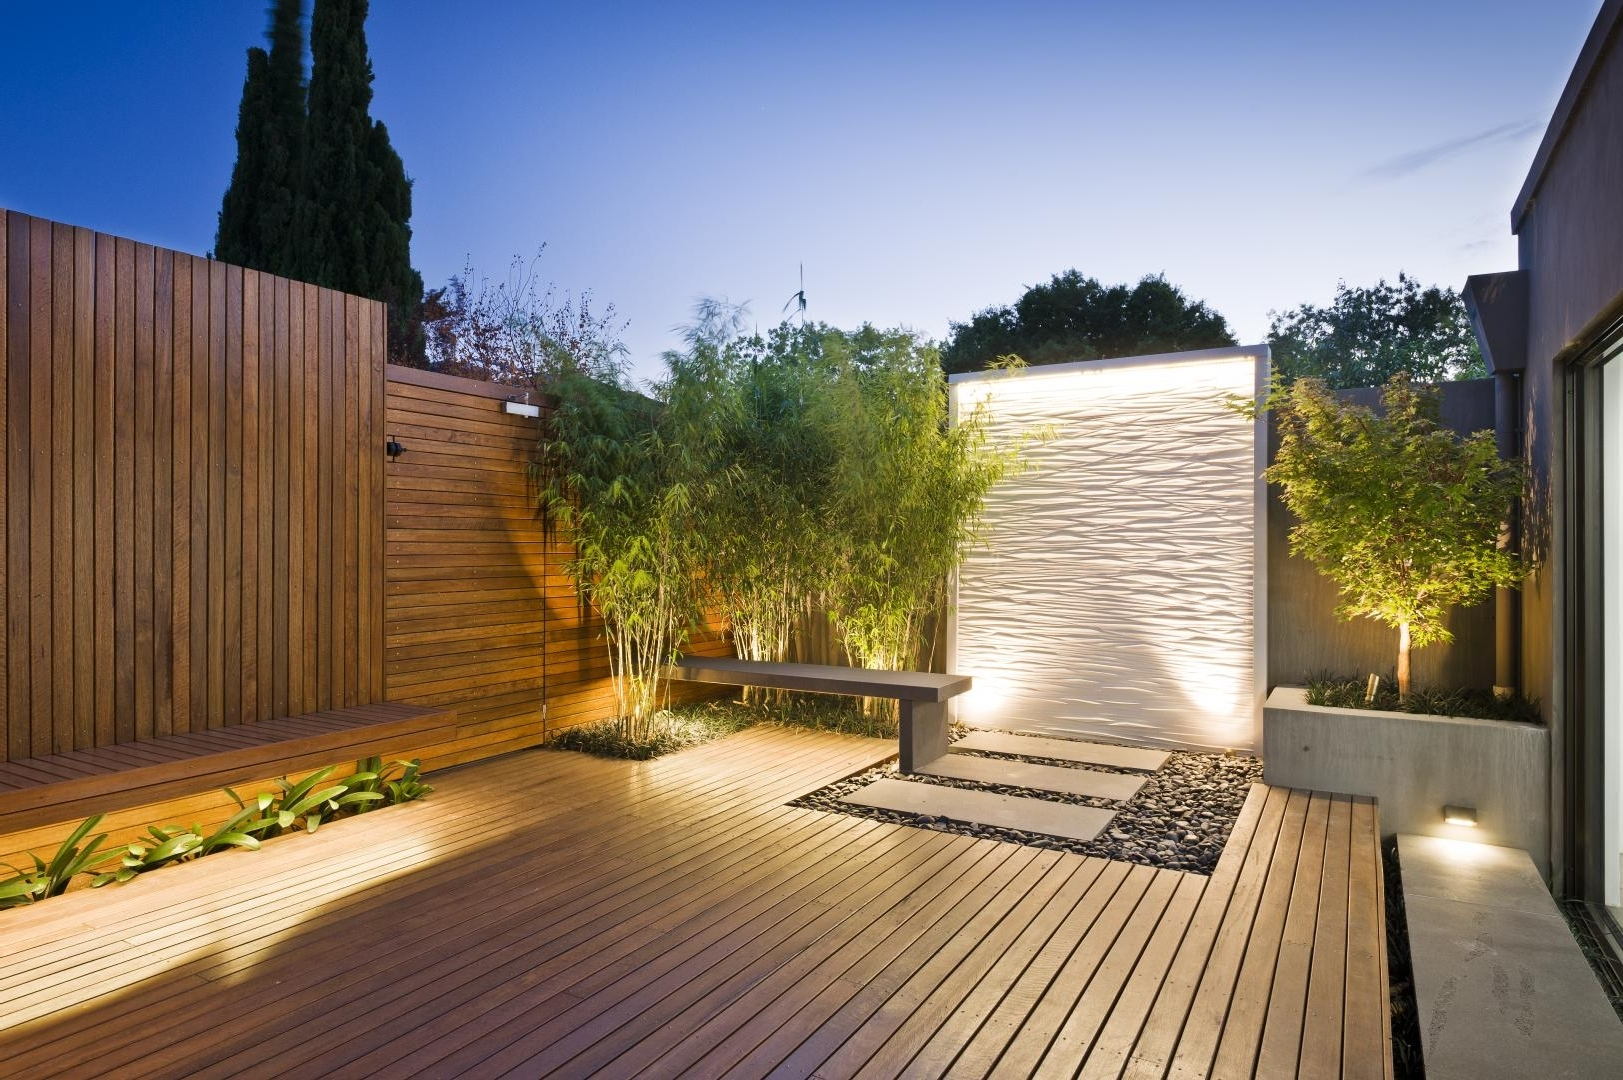 Fashionable Contemporary Deck Lighting Ideas — Jbeedesigns Outdoor : Deck With Modern Garden Low Voltage Deck Lighting (View 4 of 20)